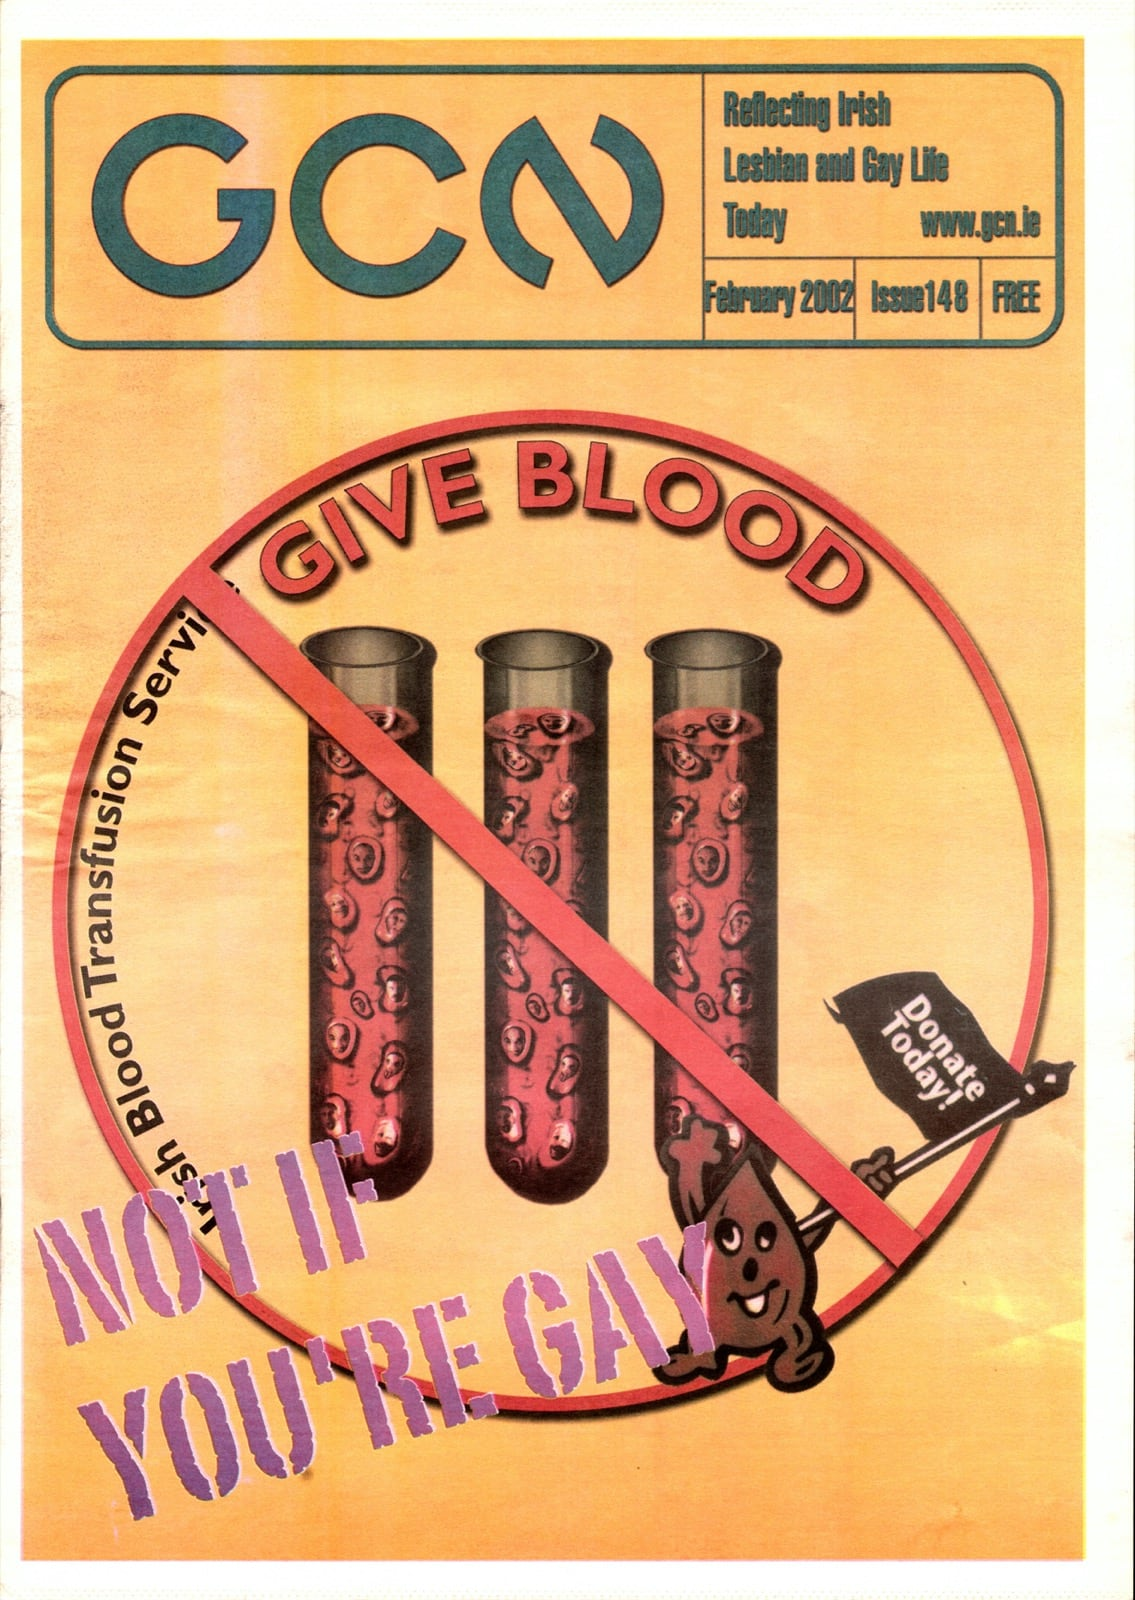 Some of GCN's covers from 1999 with a 'Give Blood - Not if you're gay' illustration with phials of blood on the cover.